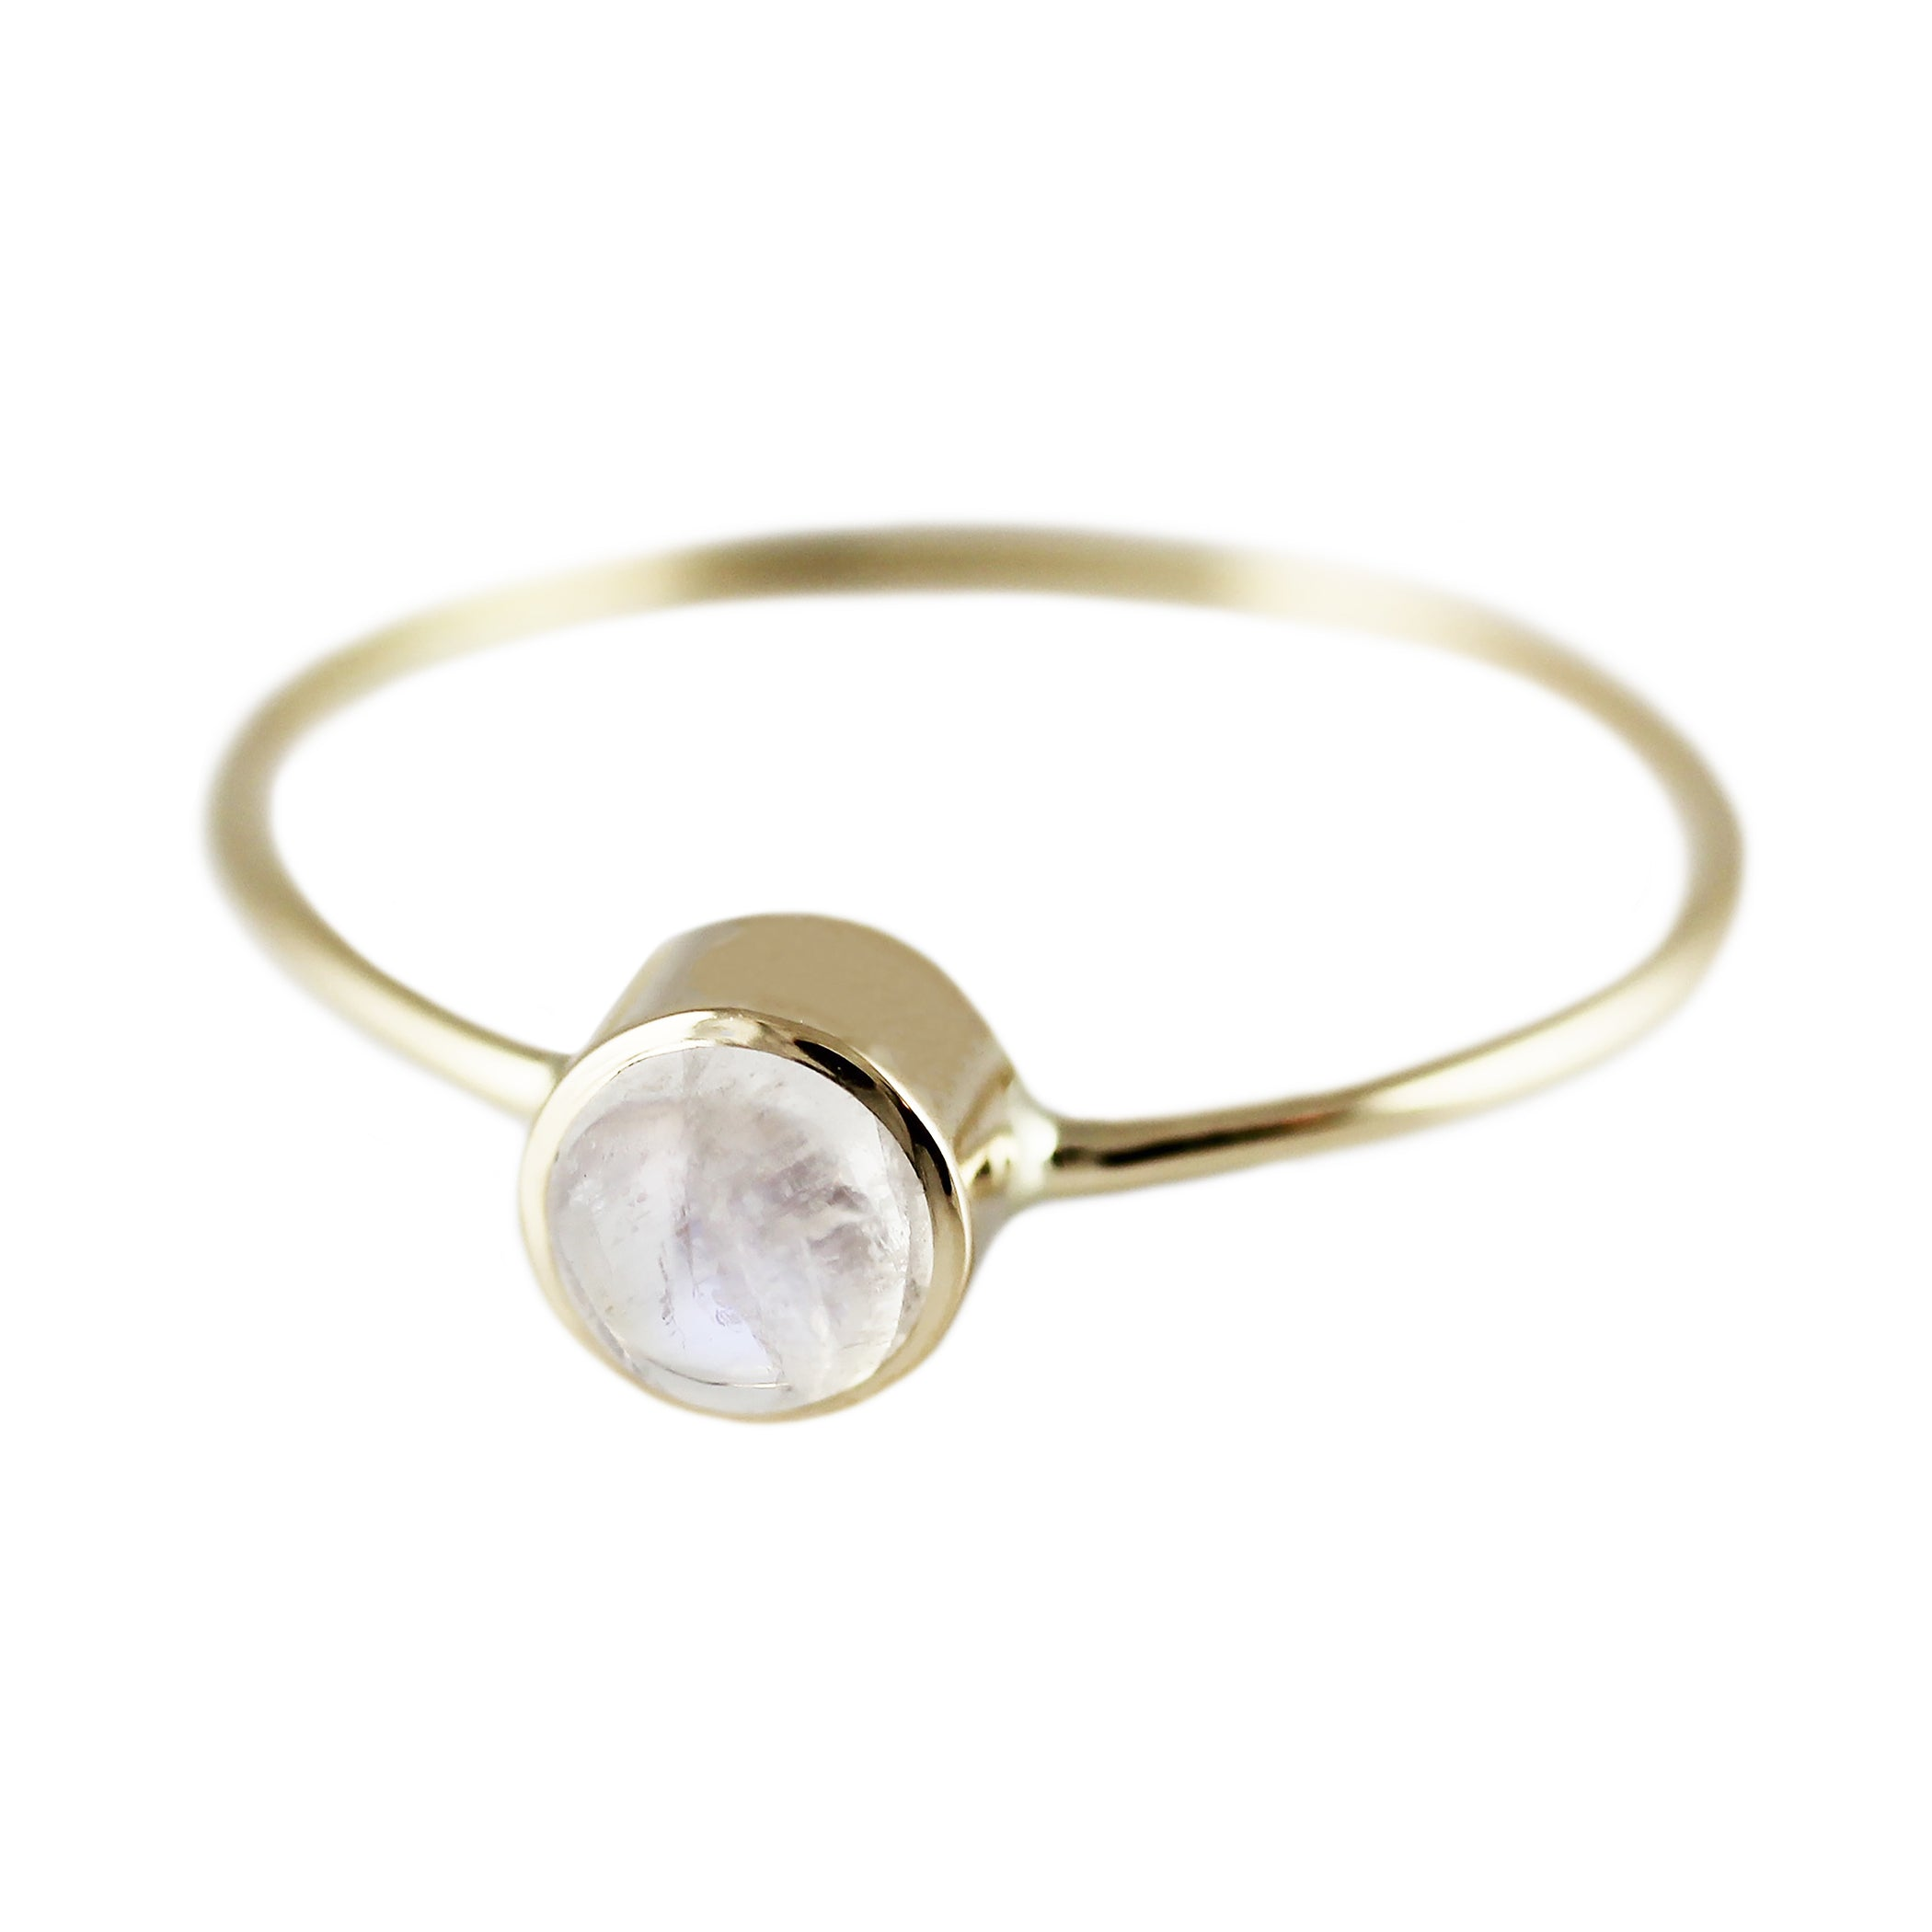 gold rings mina lyst gallery ring normal metallic wearstler in kelly jewelry moonstone product